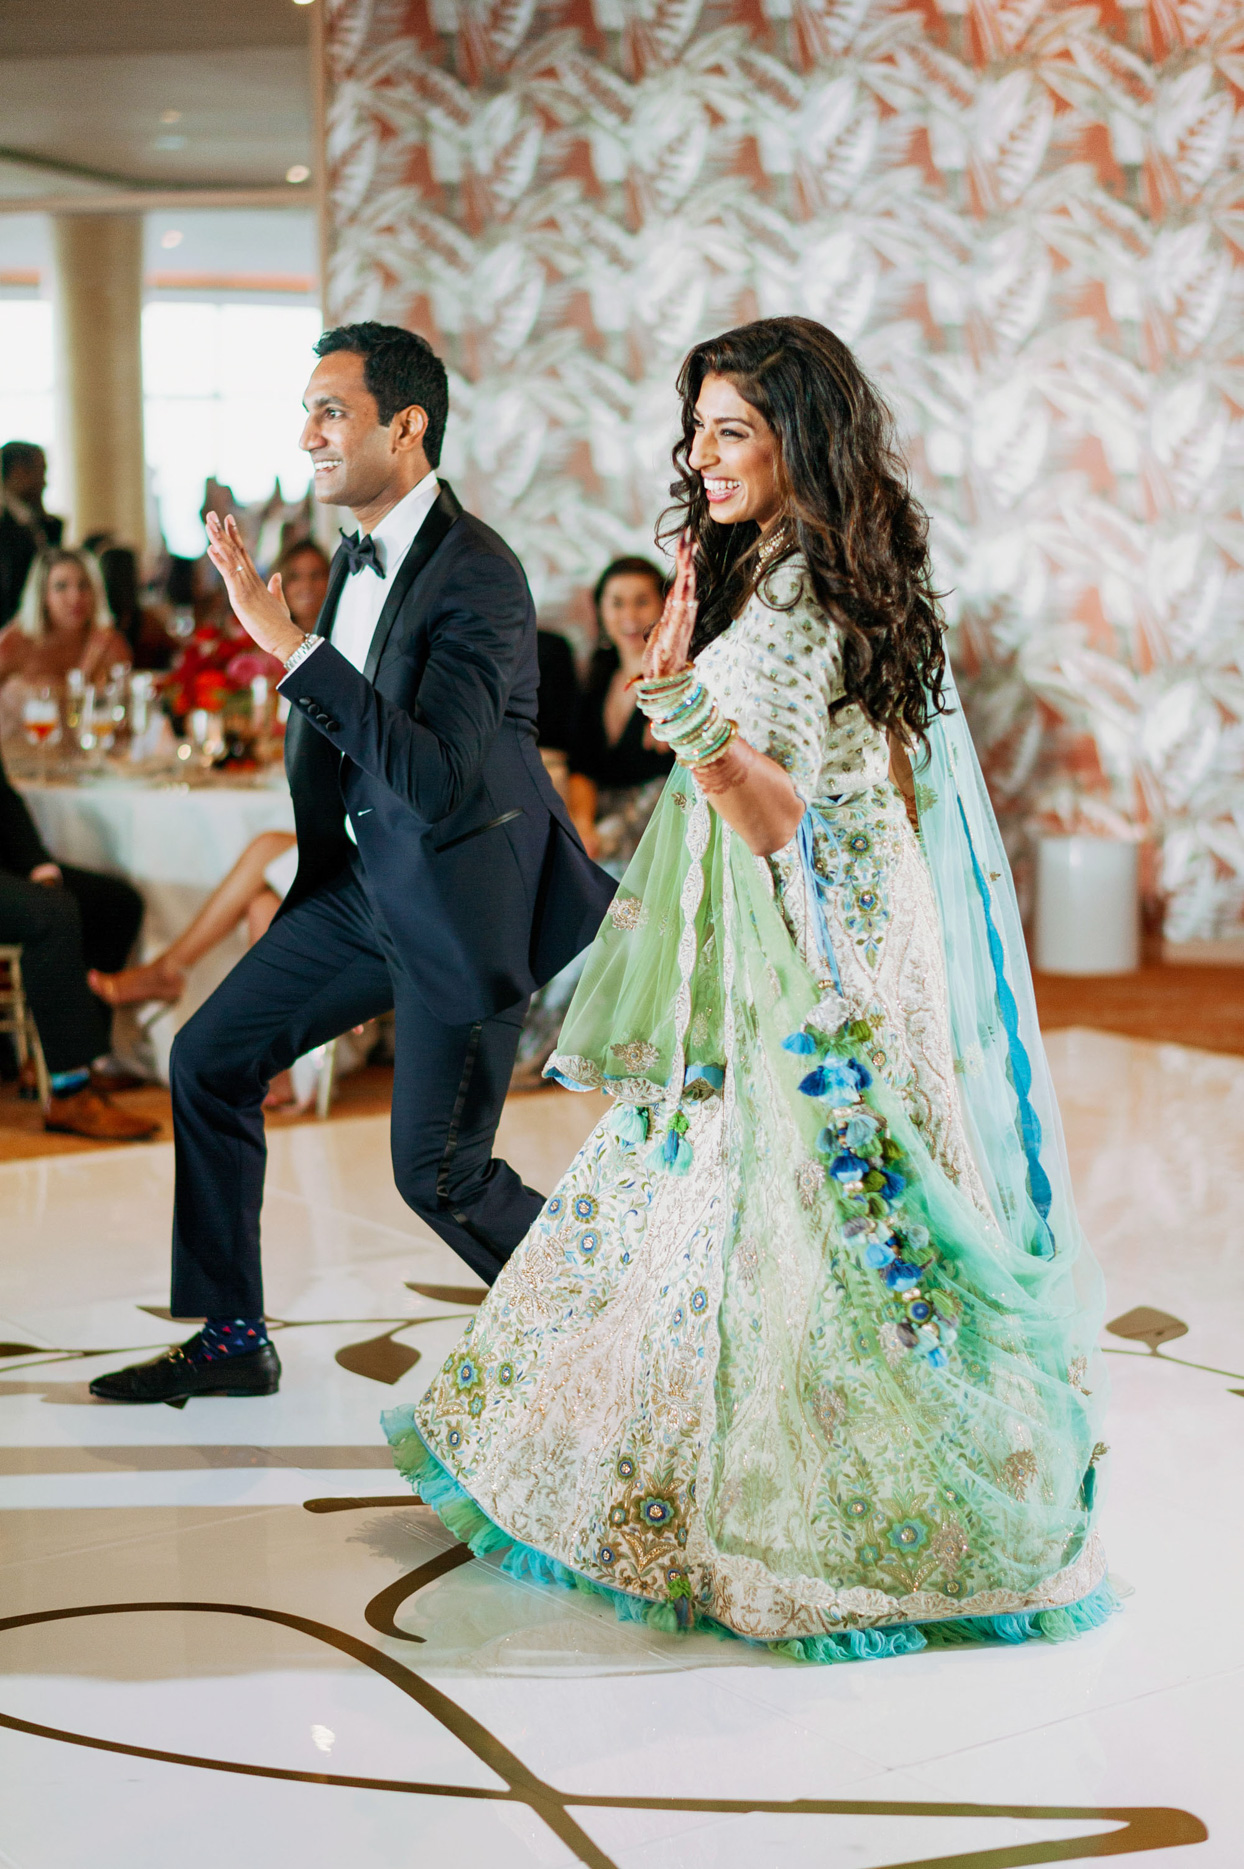 Bride and groom doing dance together